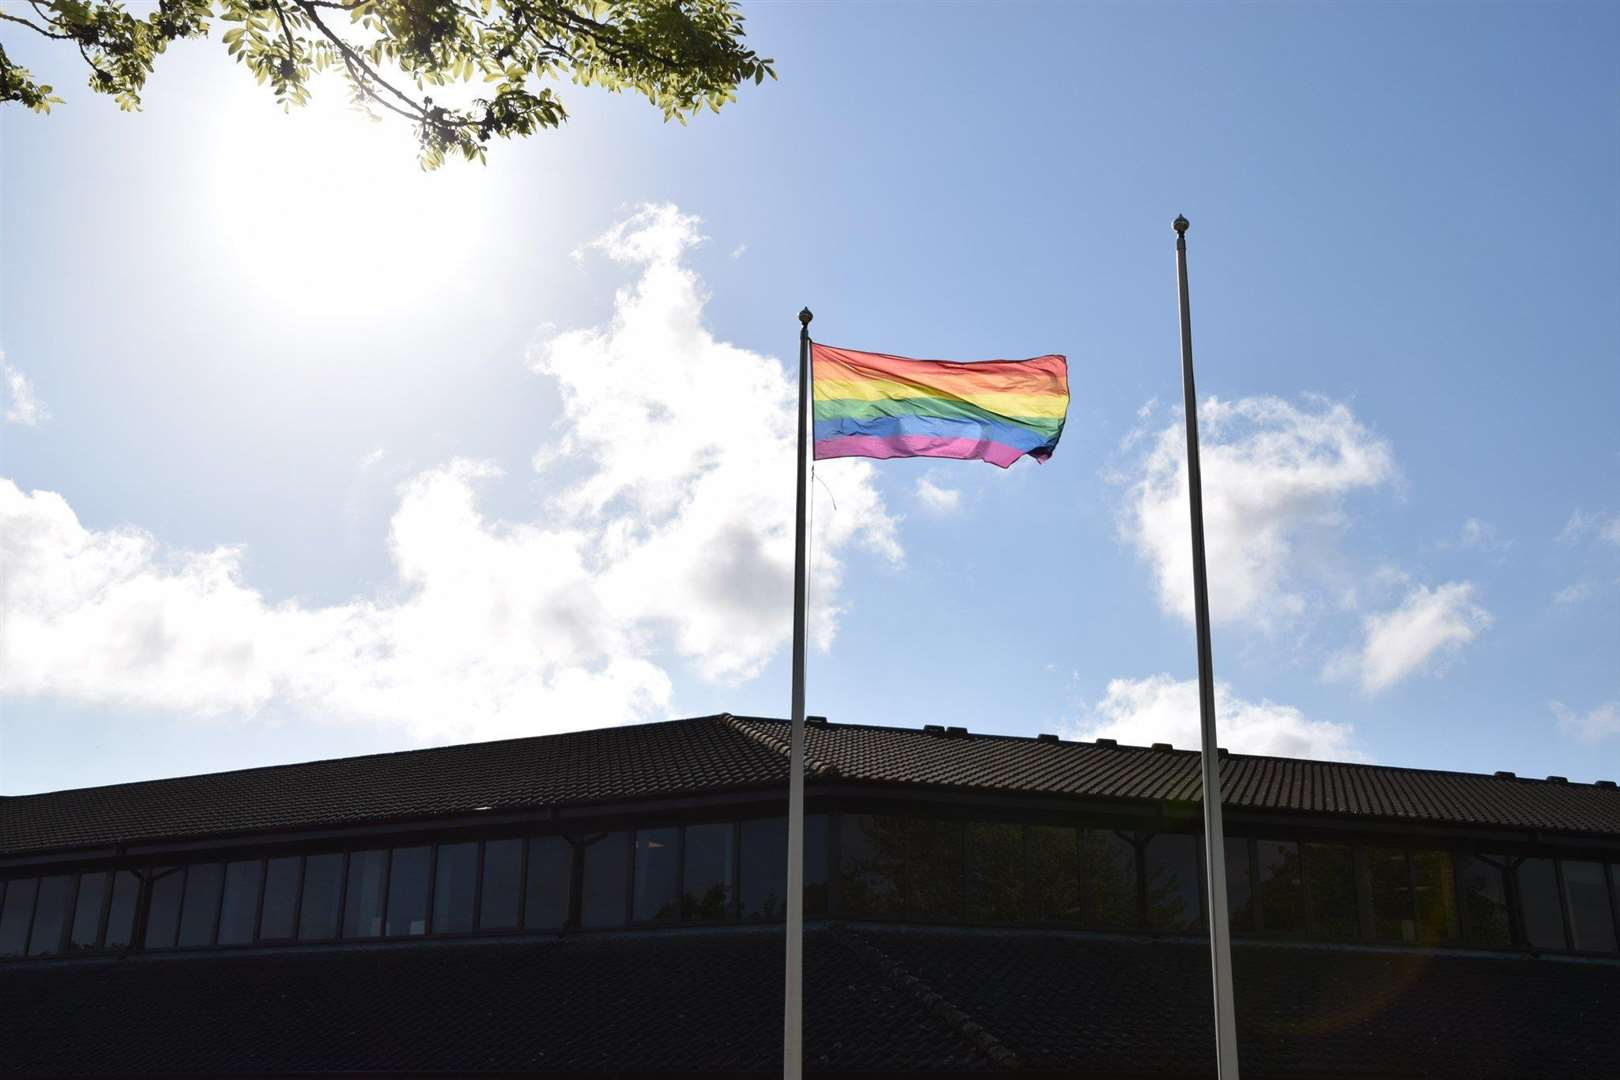 The rainbow flag outside Leicestershire police headquarters